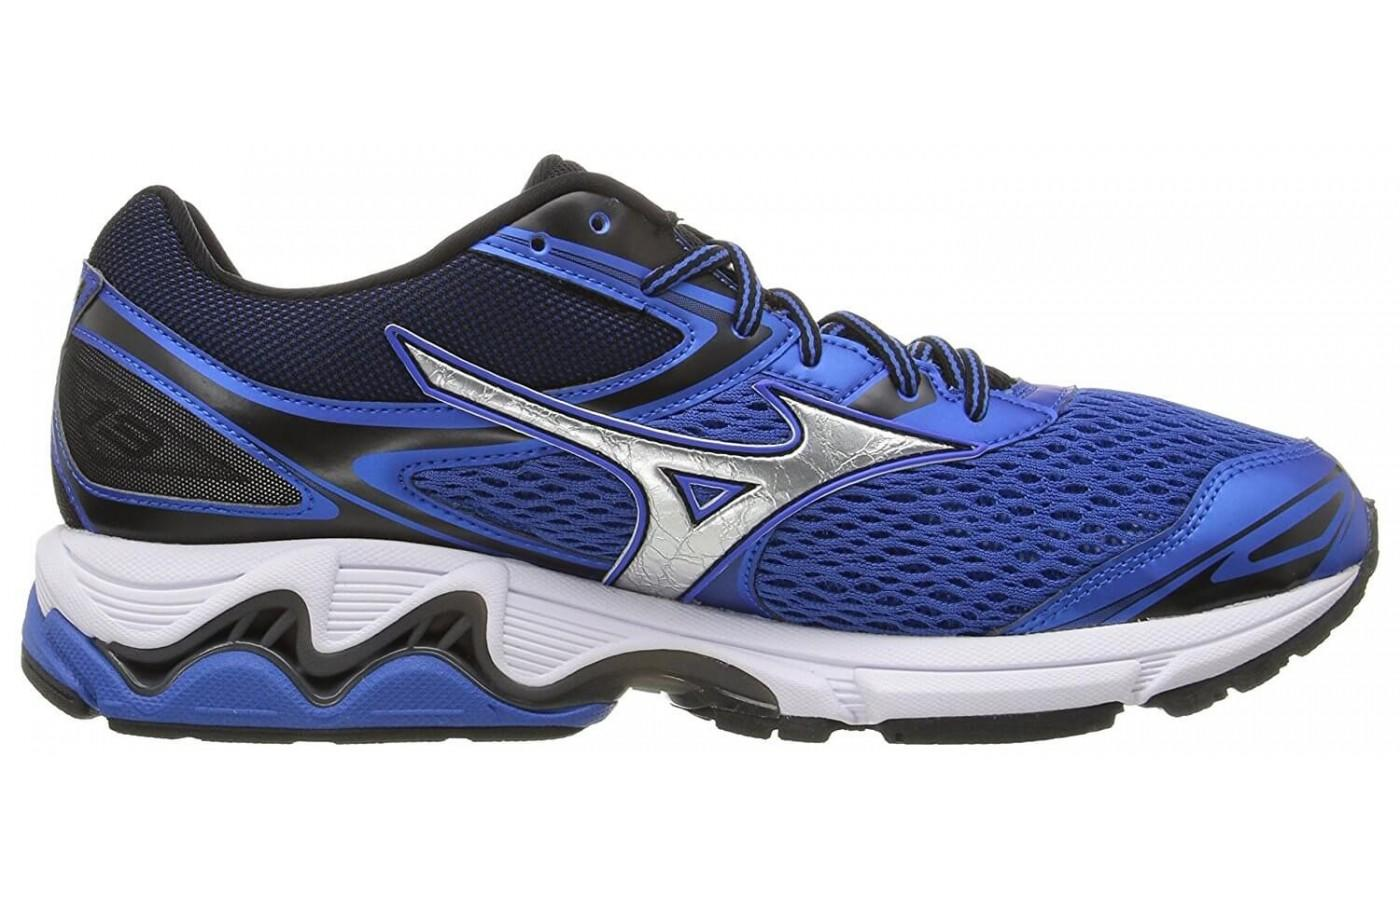 Mizuno Wave Inspire 13 has a midsole wave plate to provide stability